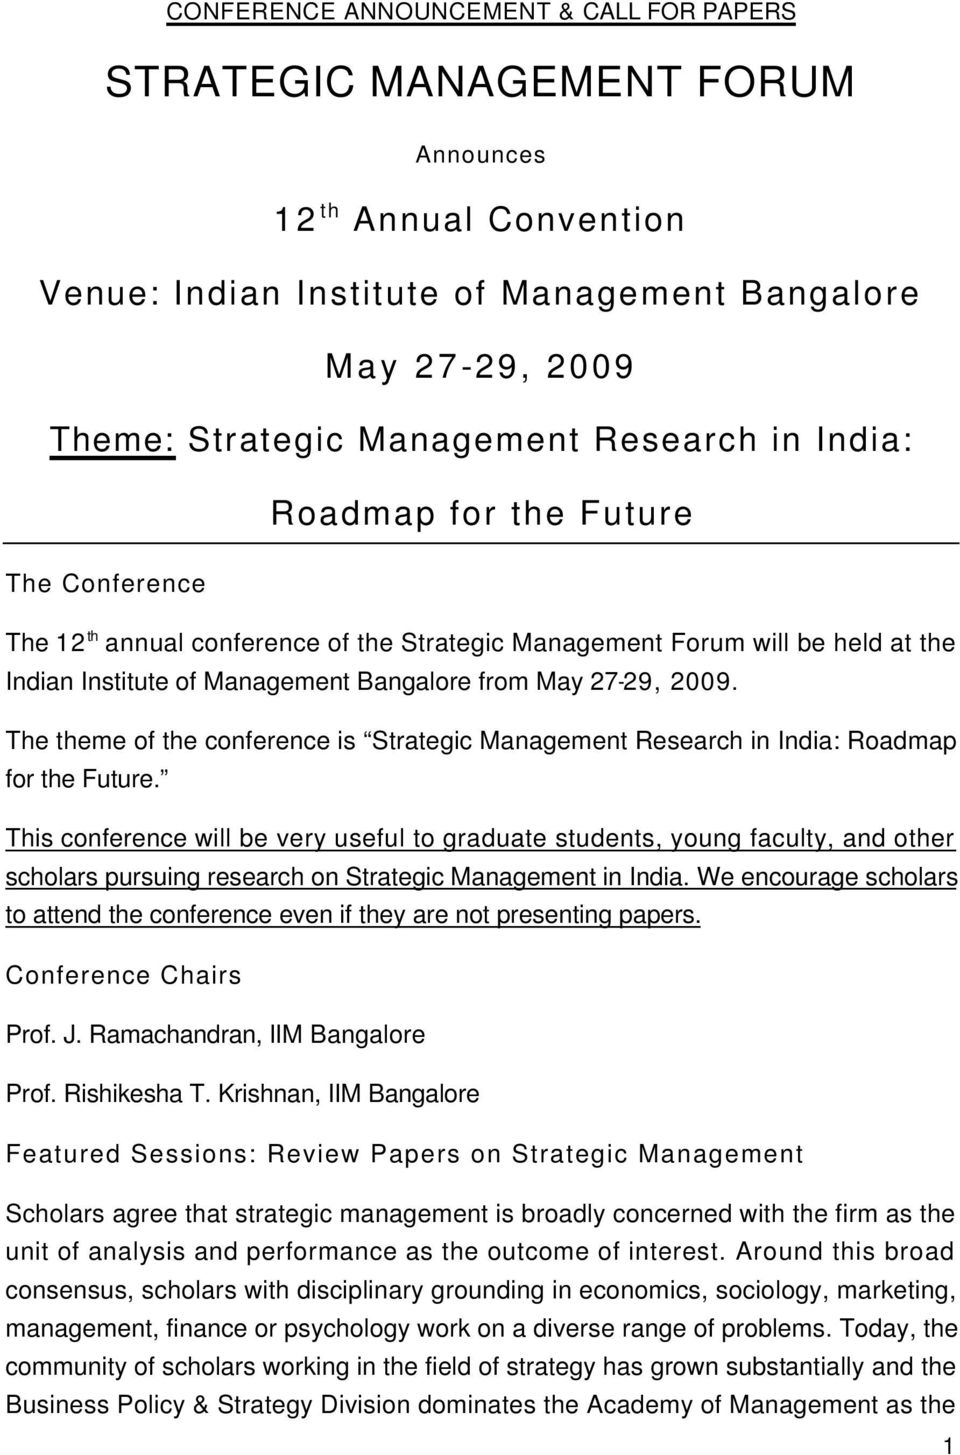 2009. The theme of the conference is Strategic Management Research in India: Roadmap for the Future.